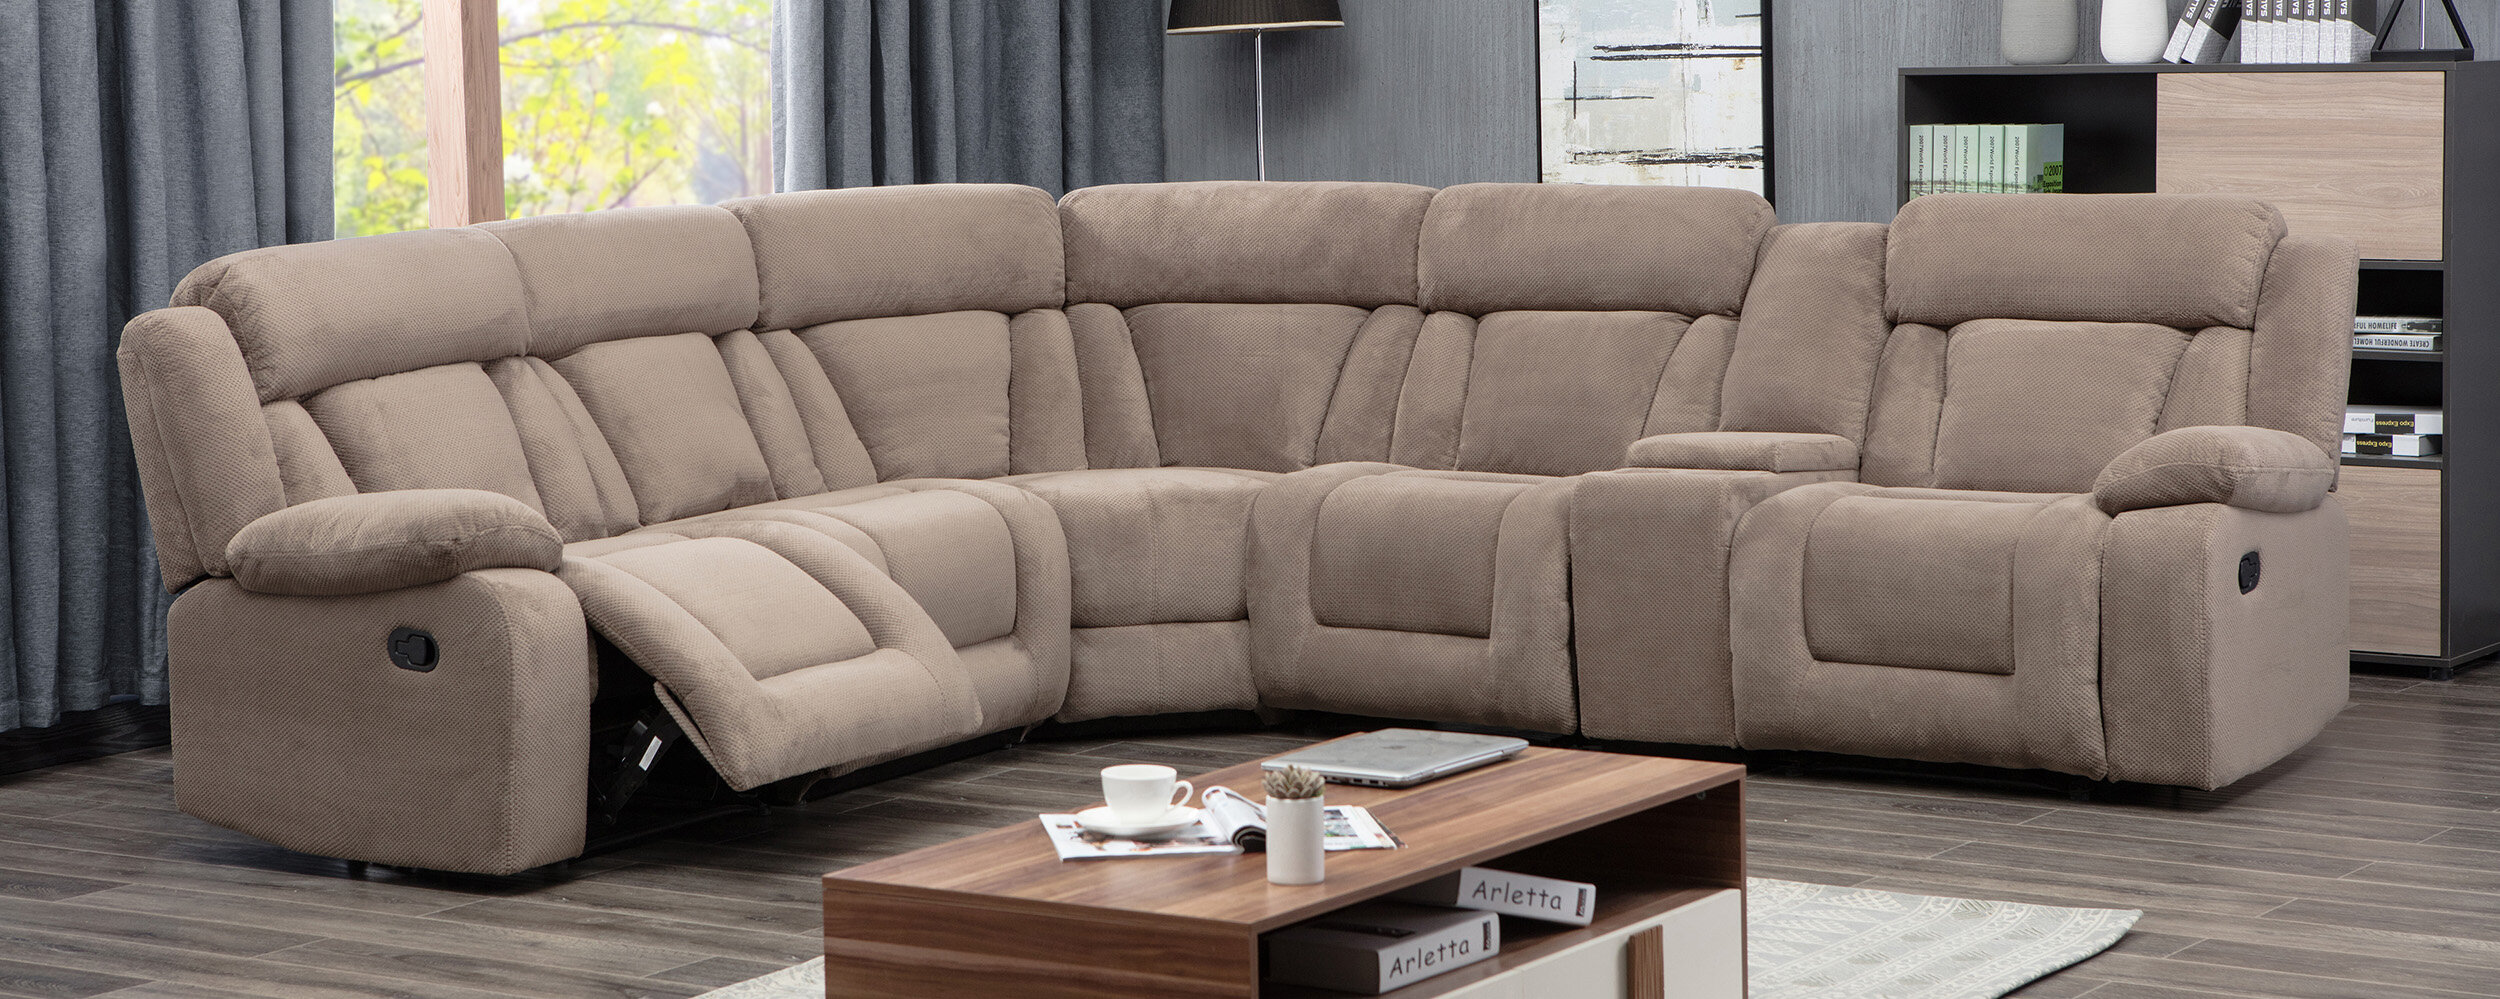 Phenomenal Herald Square Symmetrical Reclining Sectional Gmtry Best Dining Table And Chair Ideas Images Gmtryco